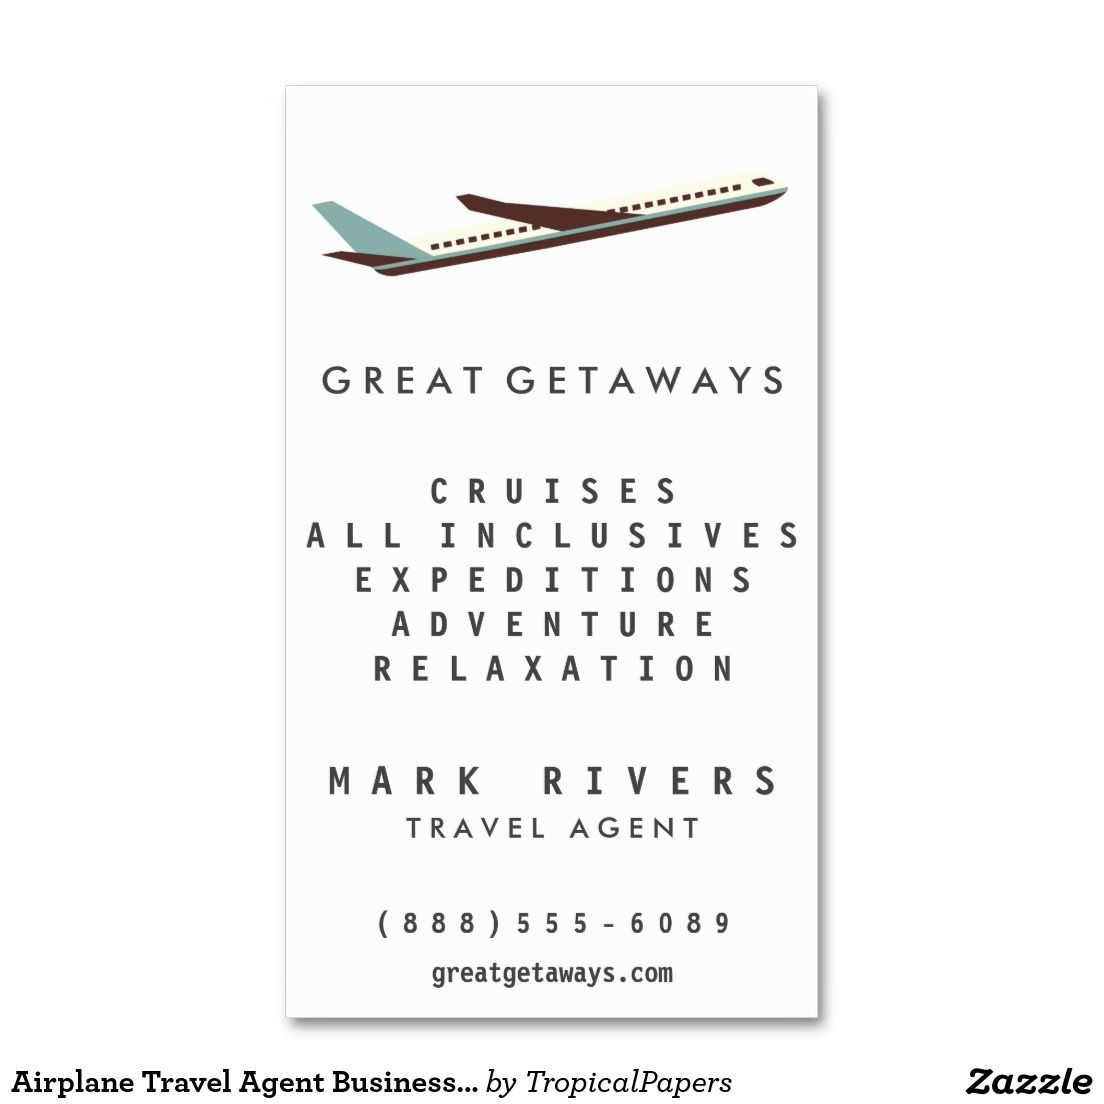 Airplane Travel Agent Business Card | Business Cards | Pinterest ...